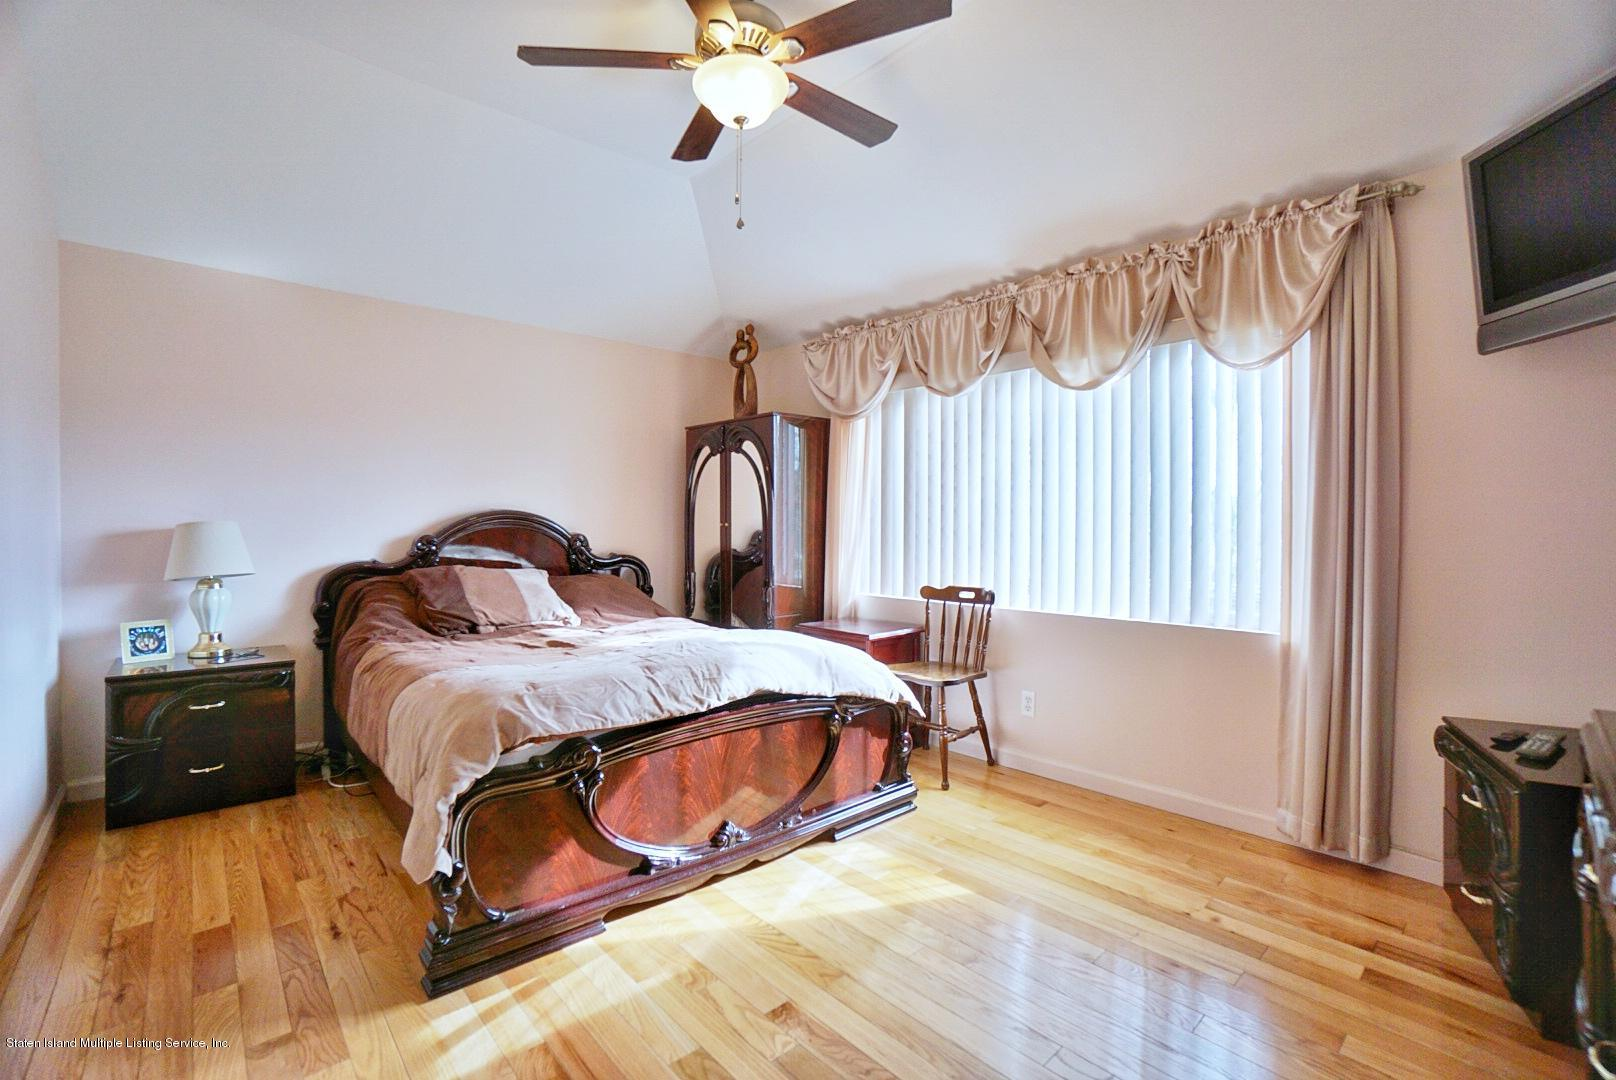 Single Family - Attached 30 Cranberry Court  Staten Island, NY 10309, MLS-1135421-27